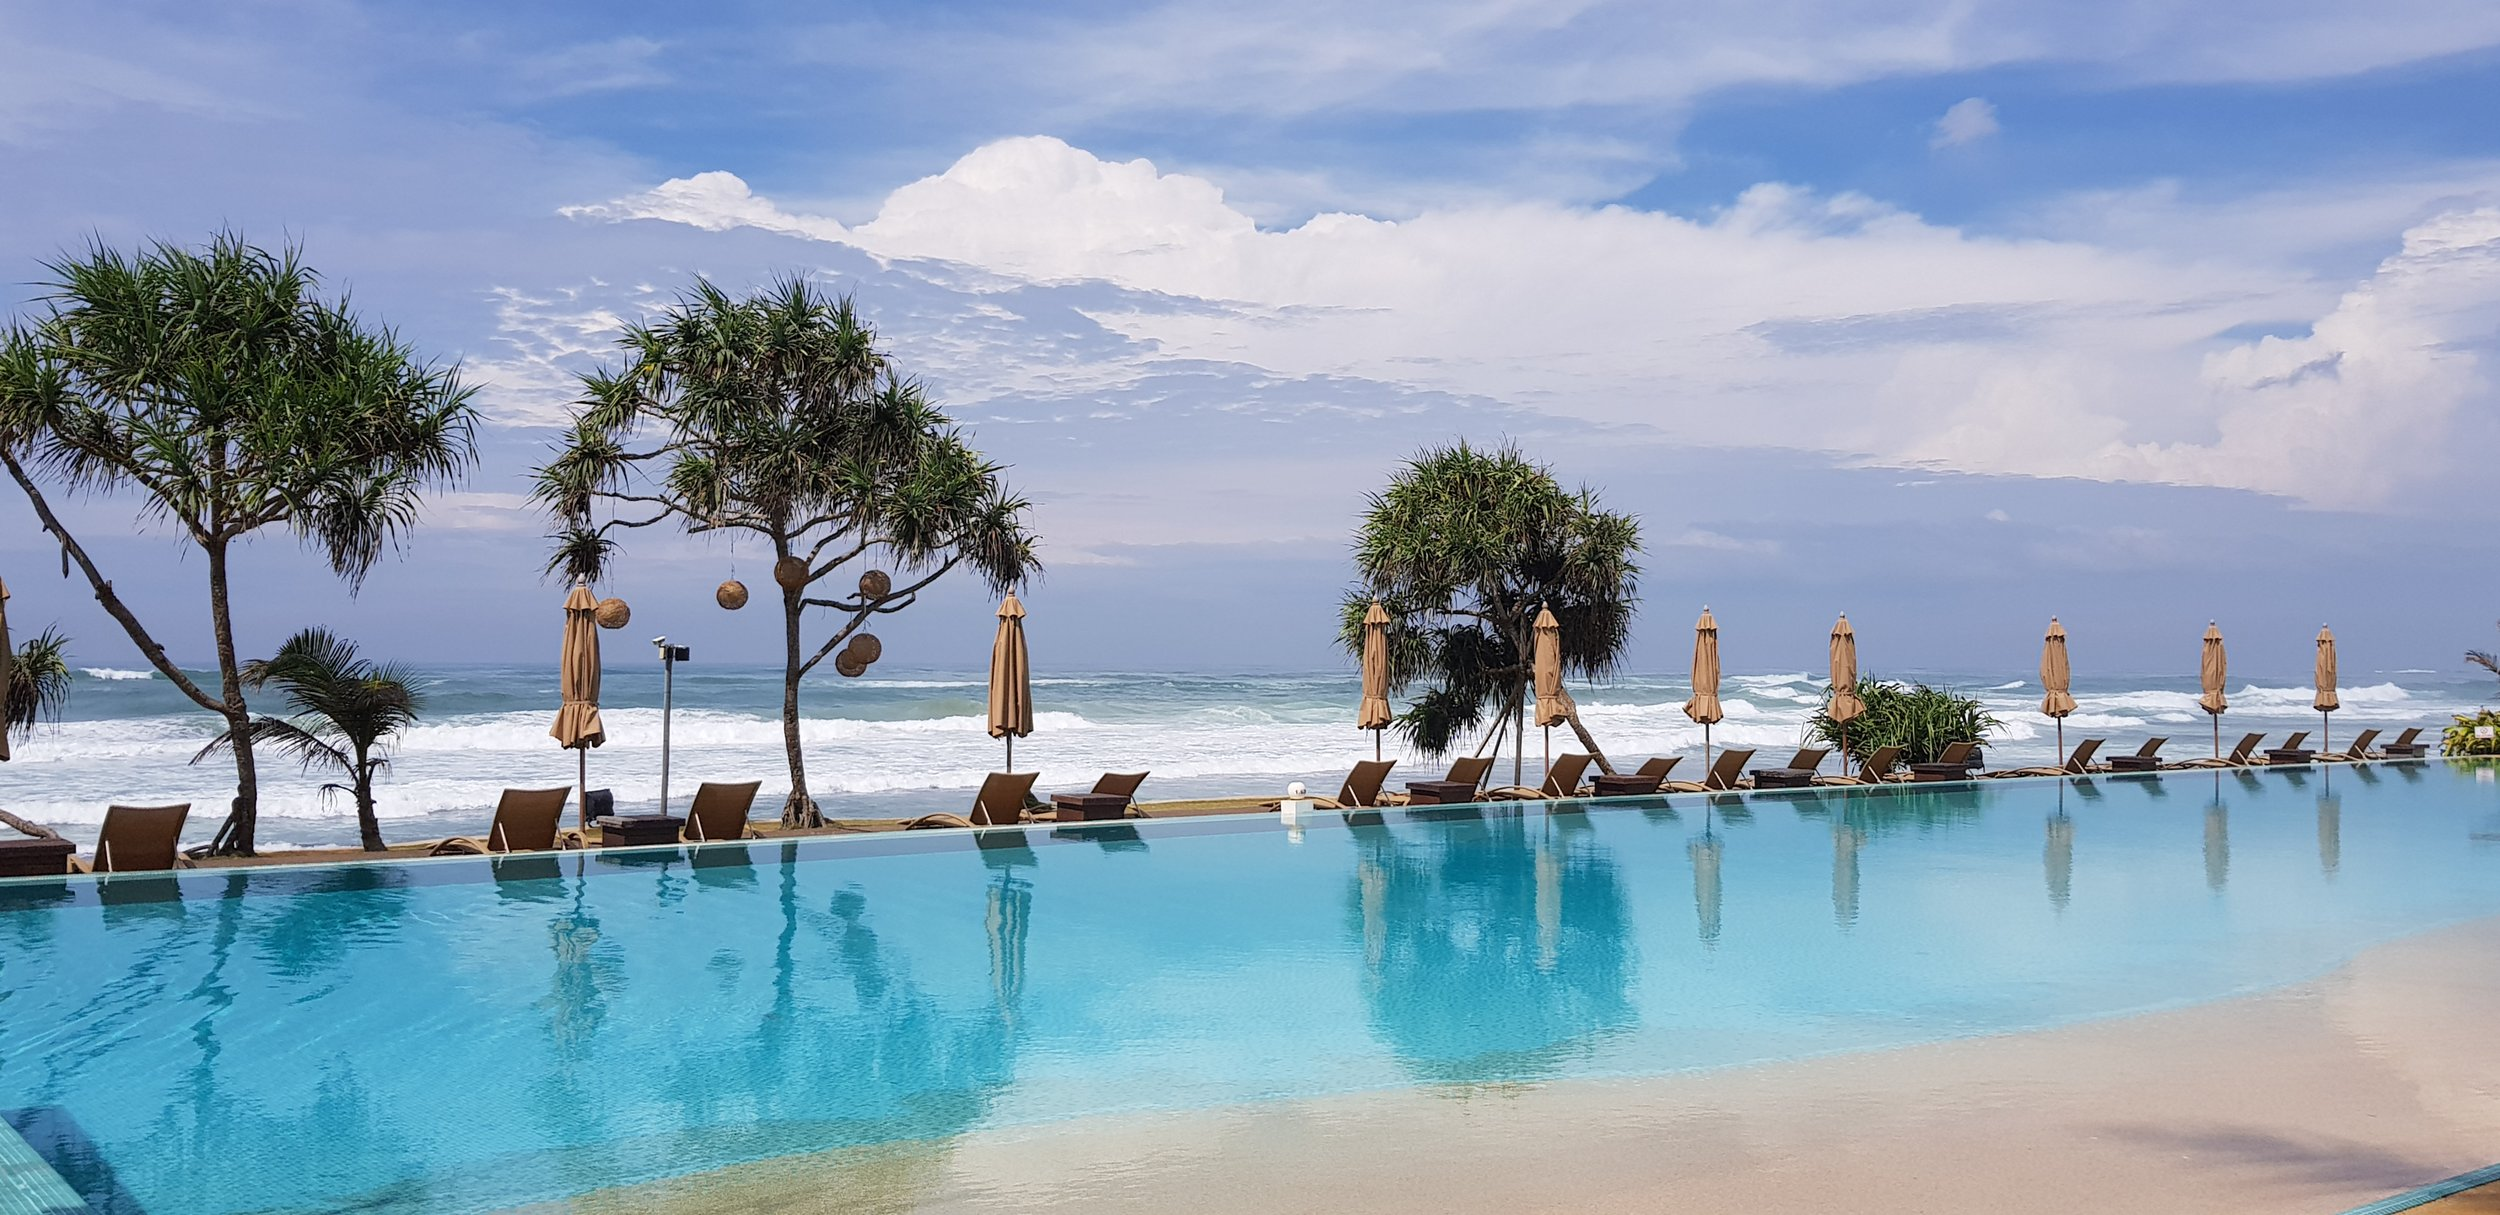 invite-to-paradise-sri-lanka-holiday-honeymoon-specialists-customer-feedback-fleur-simon-minshull-the-fortress-galle-pool-ocean-1.jpg